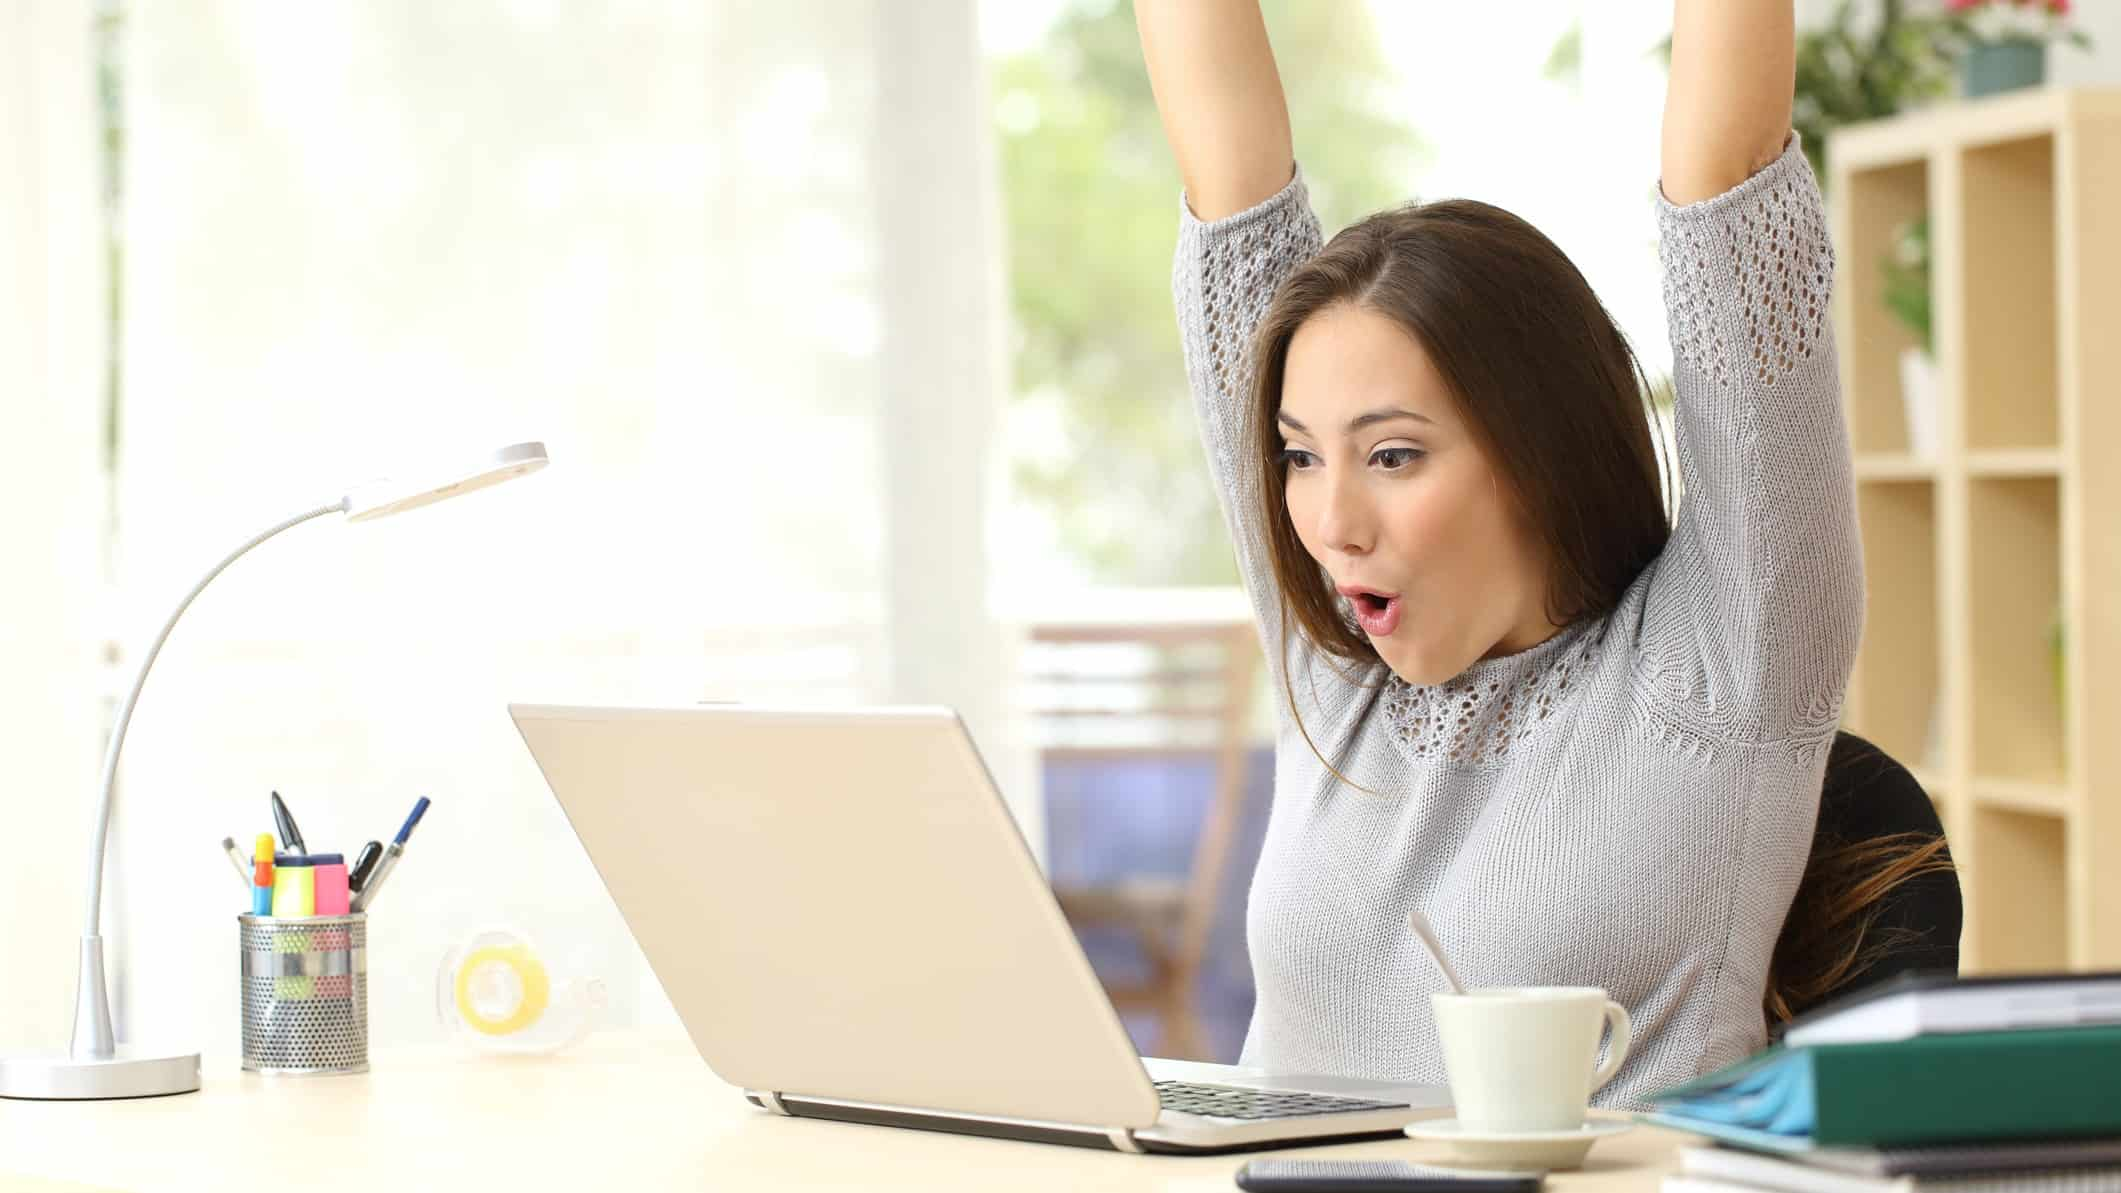 woman throwing arms up in celebration whilst looking at asx share price rise on laptop computer